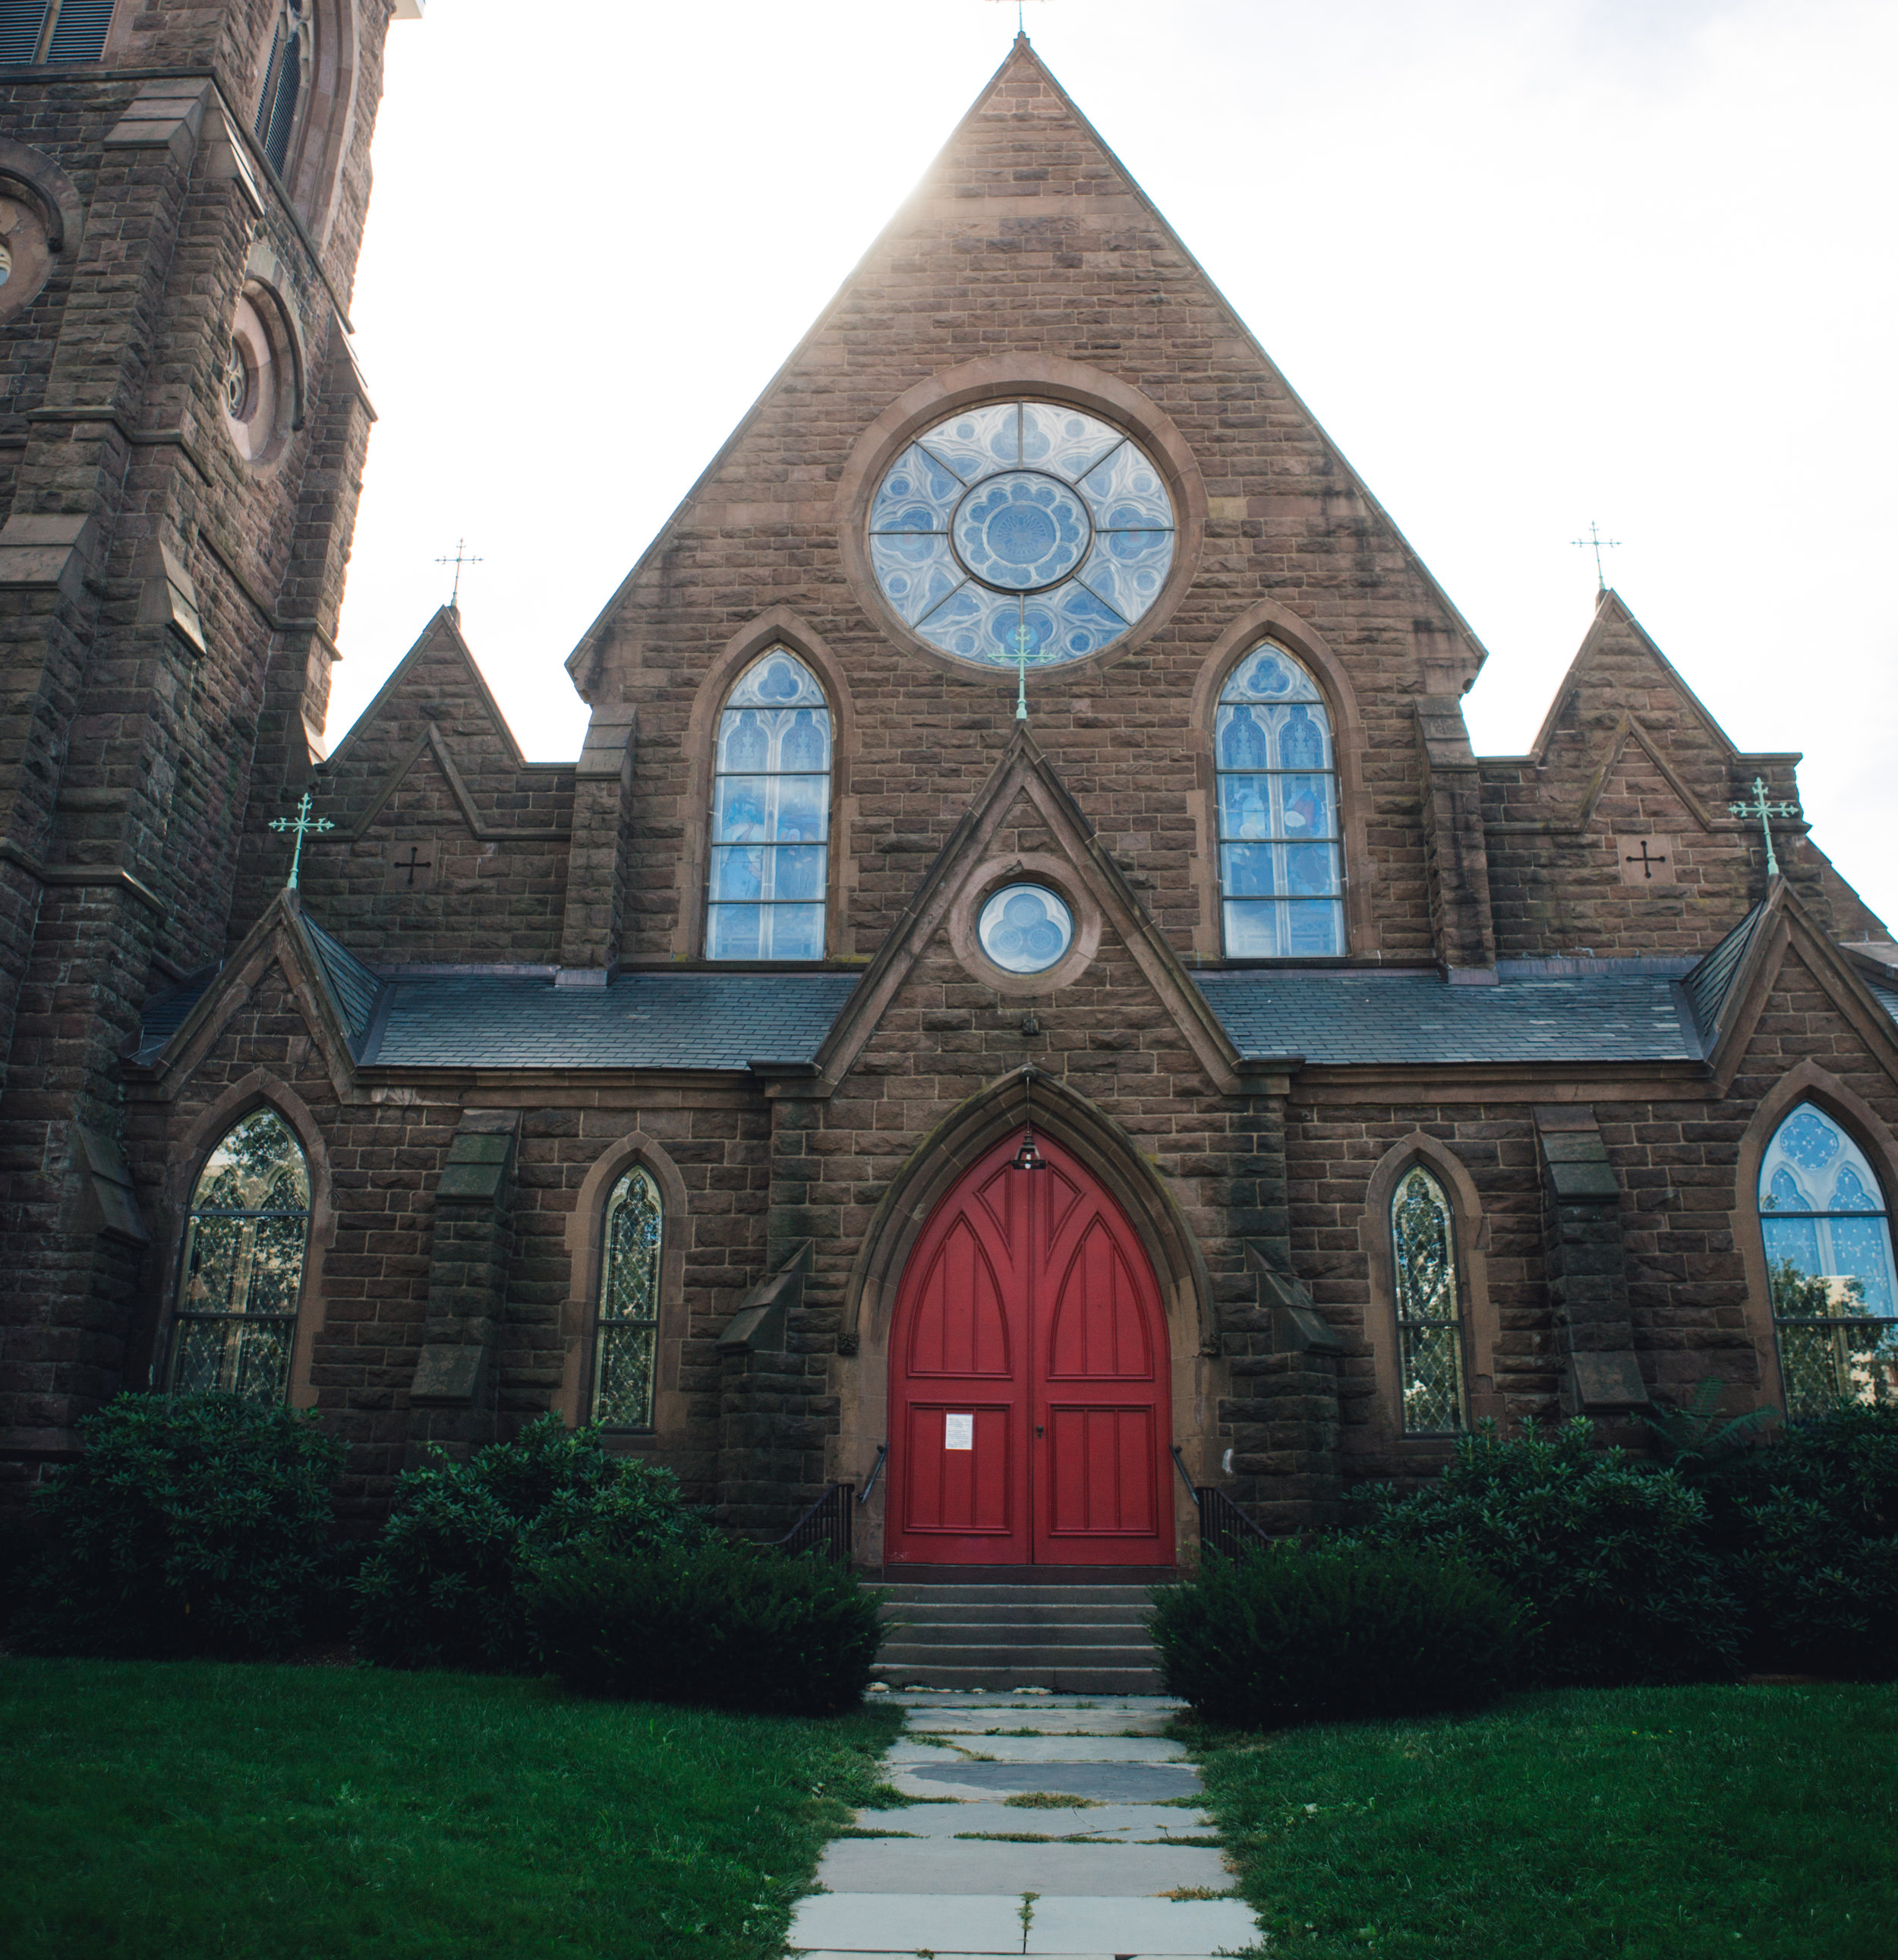 A church in my mom's hometown- Middletown, Connecticut. It was so amazing to explore where she grew up and experience the places from all the stories I've heard.